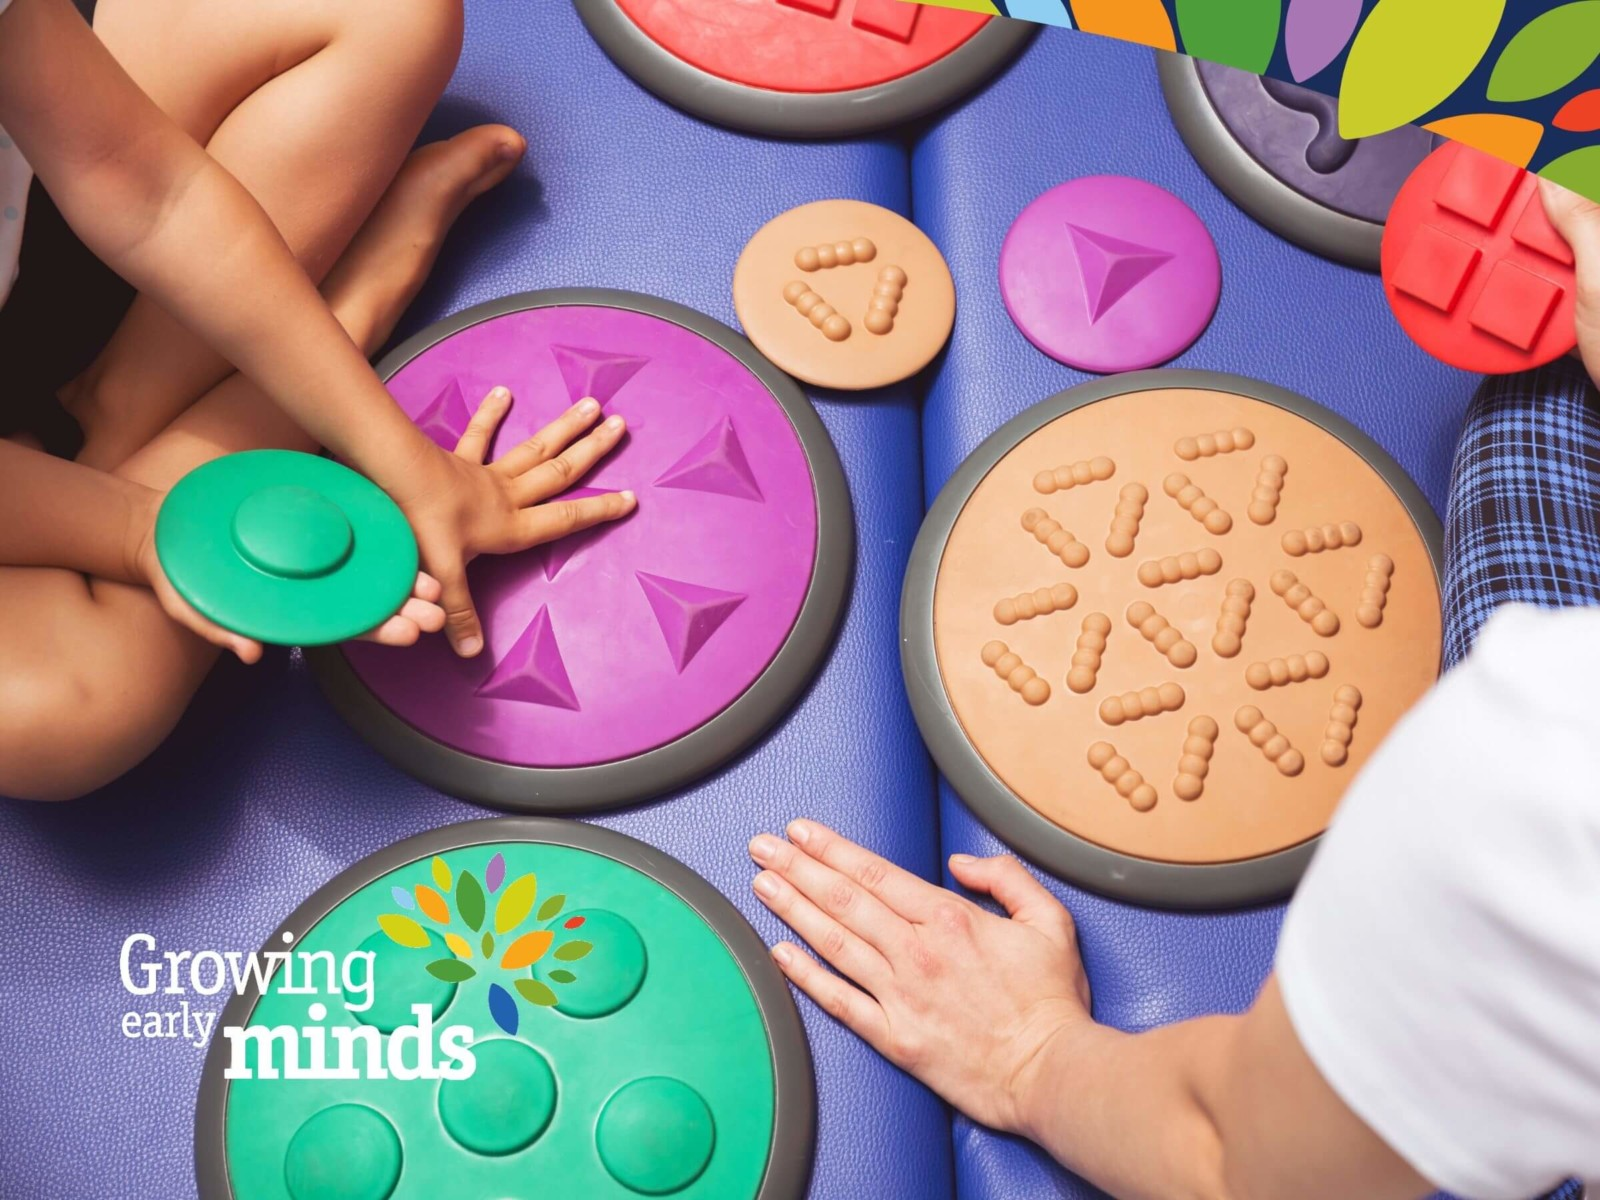 Occupational Therapy Tactile Discs For Sensory Processing Integration